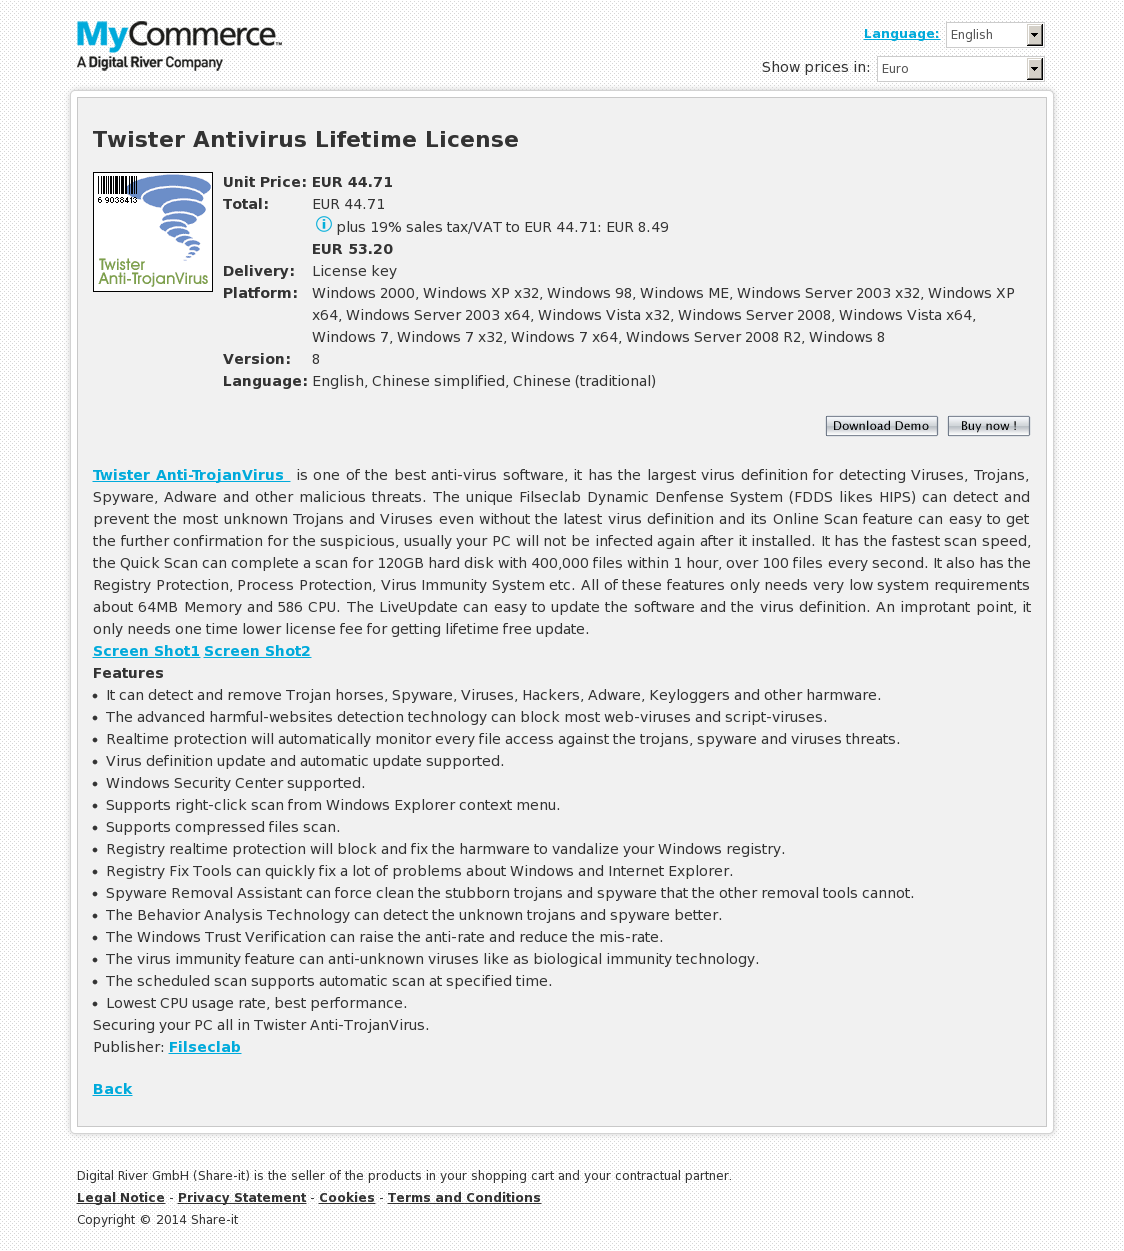 Twister Antivirus Lifetime License